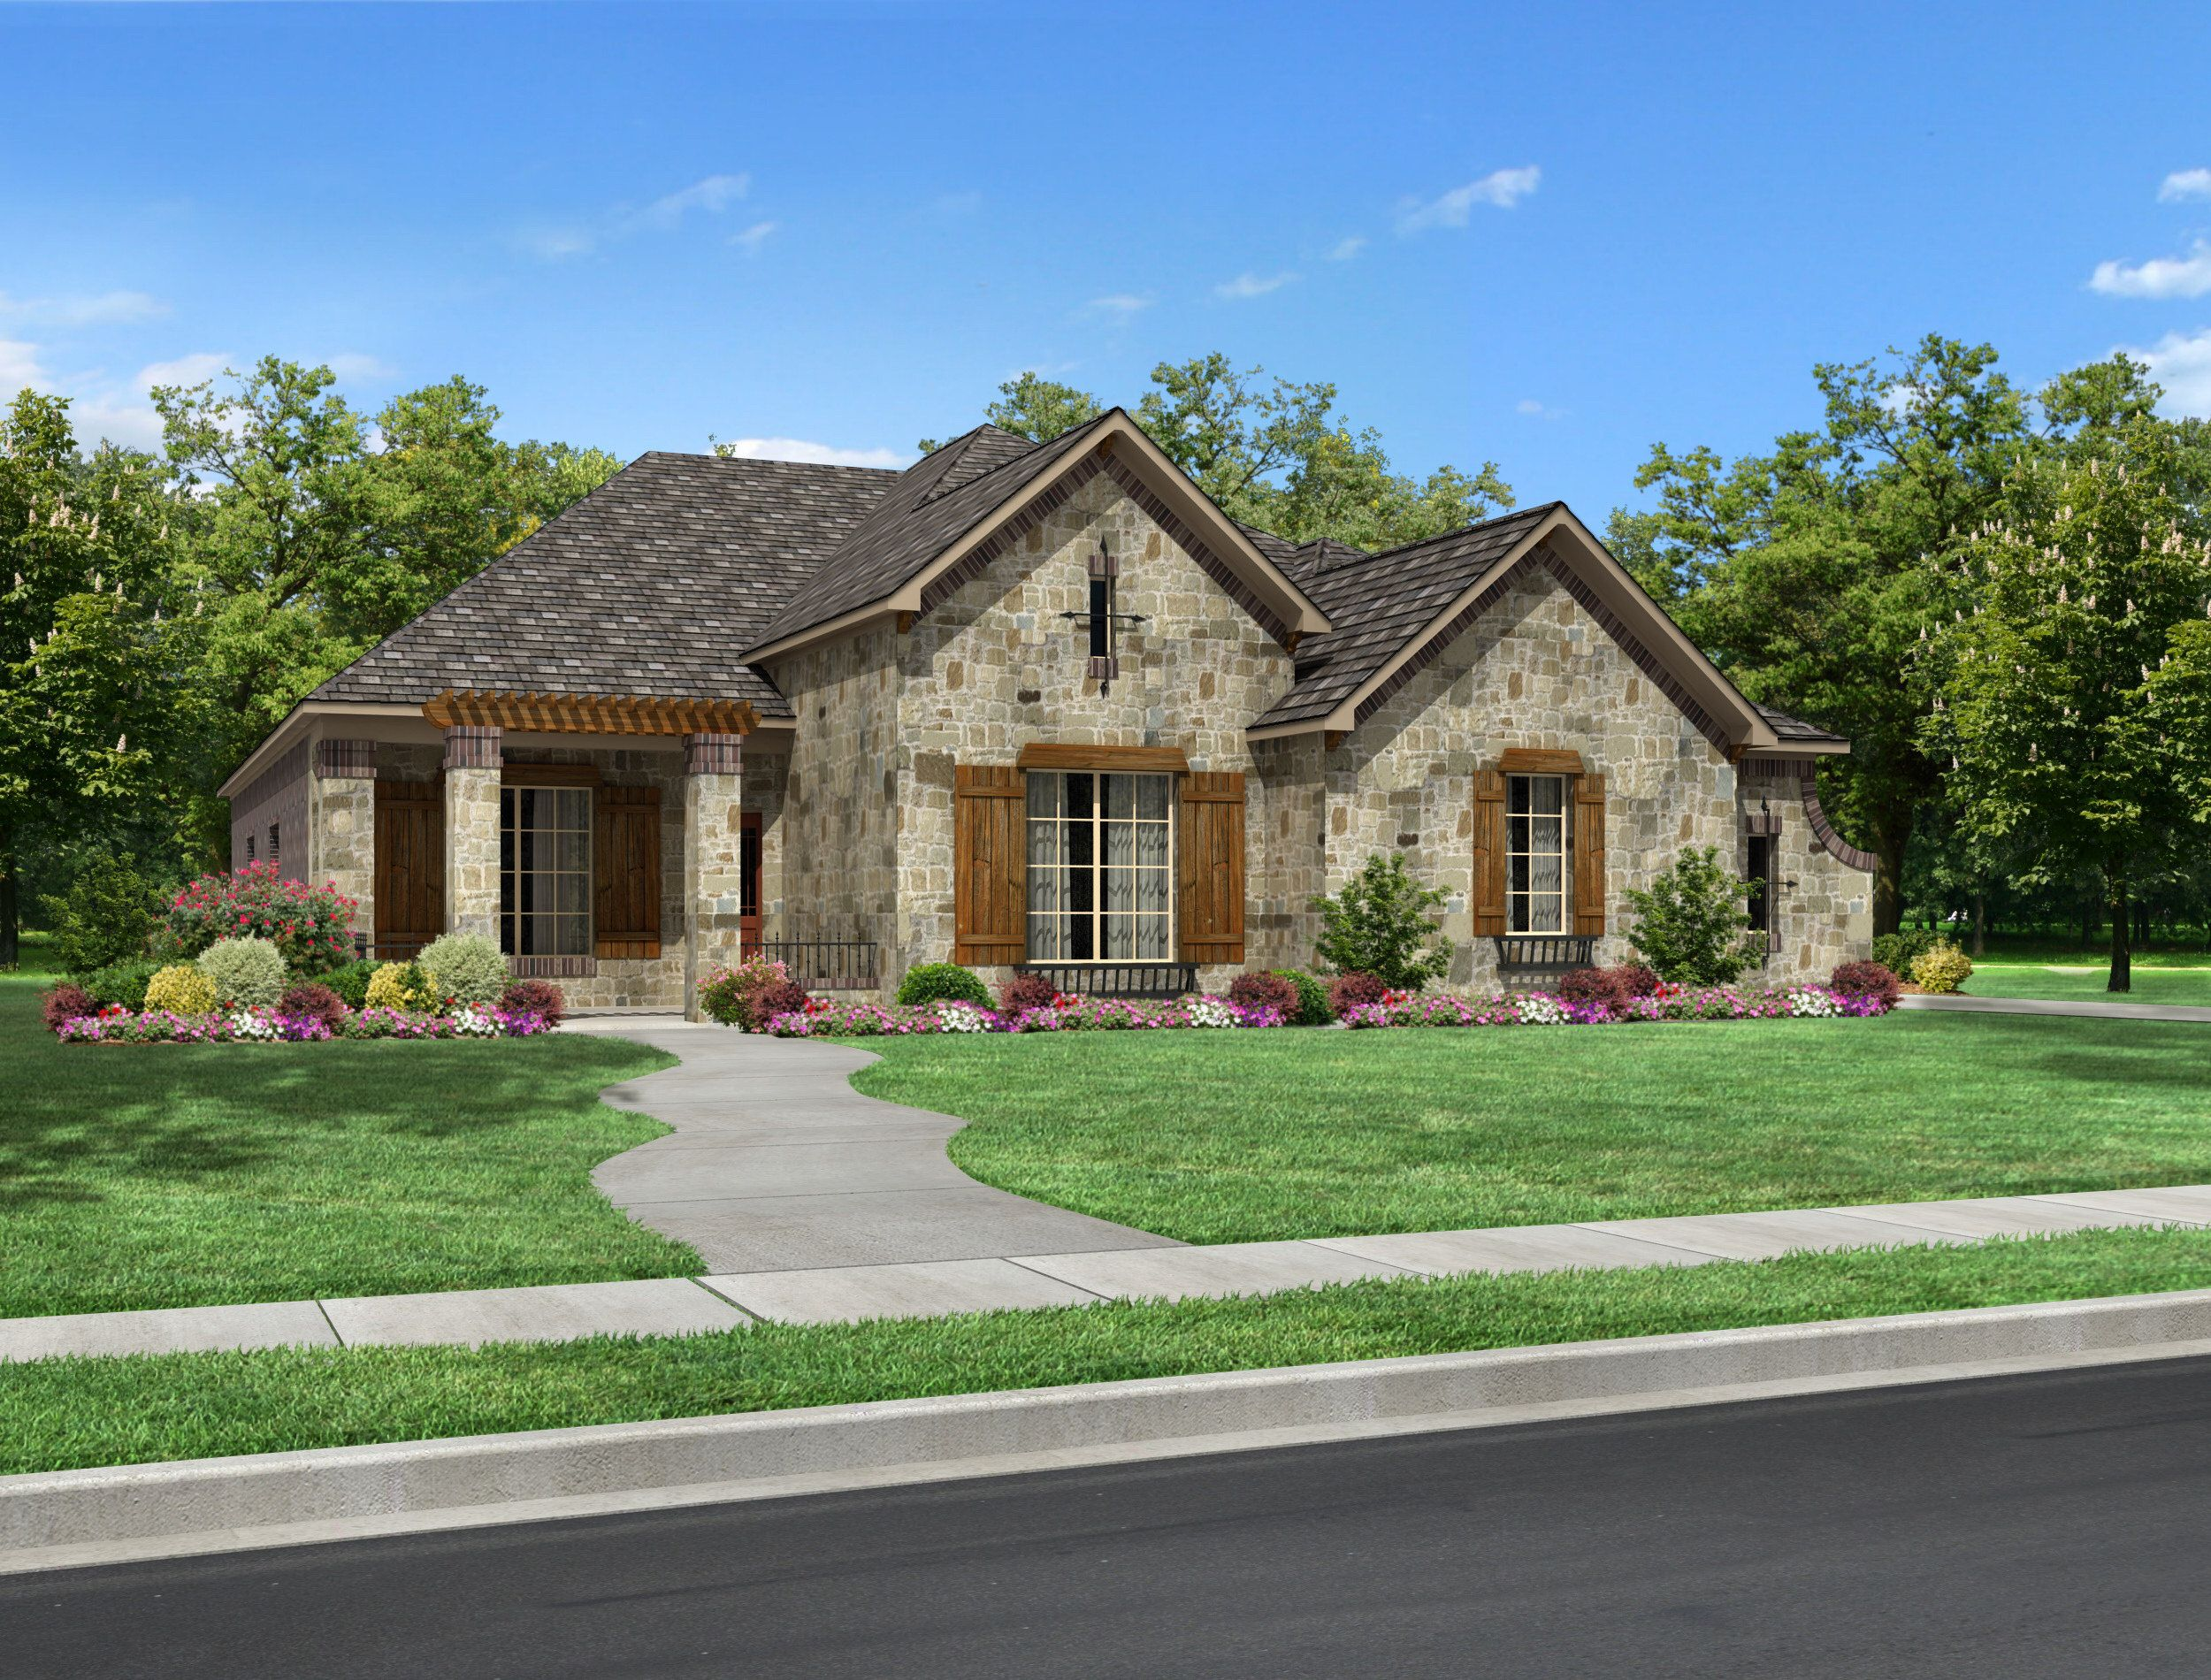 Villa Marcello Plan 3591 square foot single story home with 4